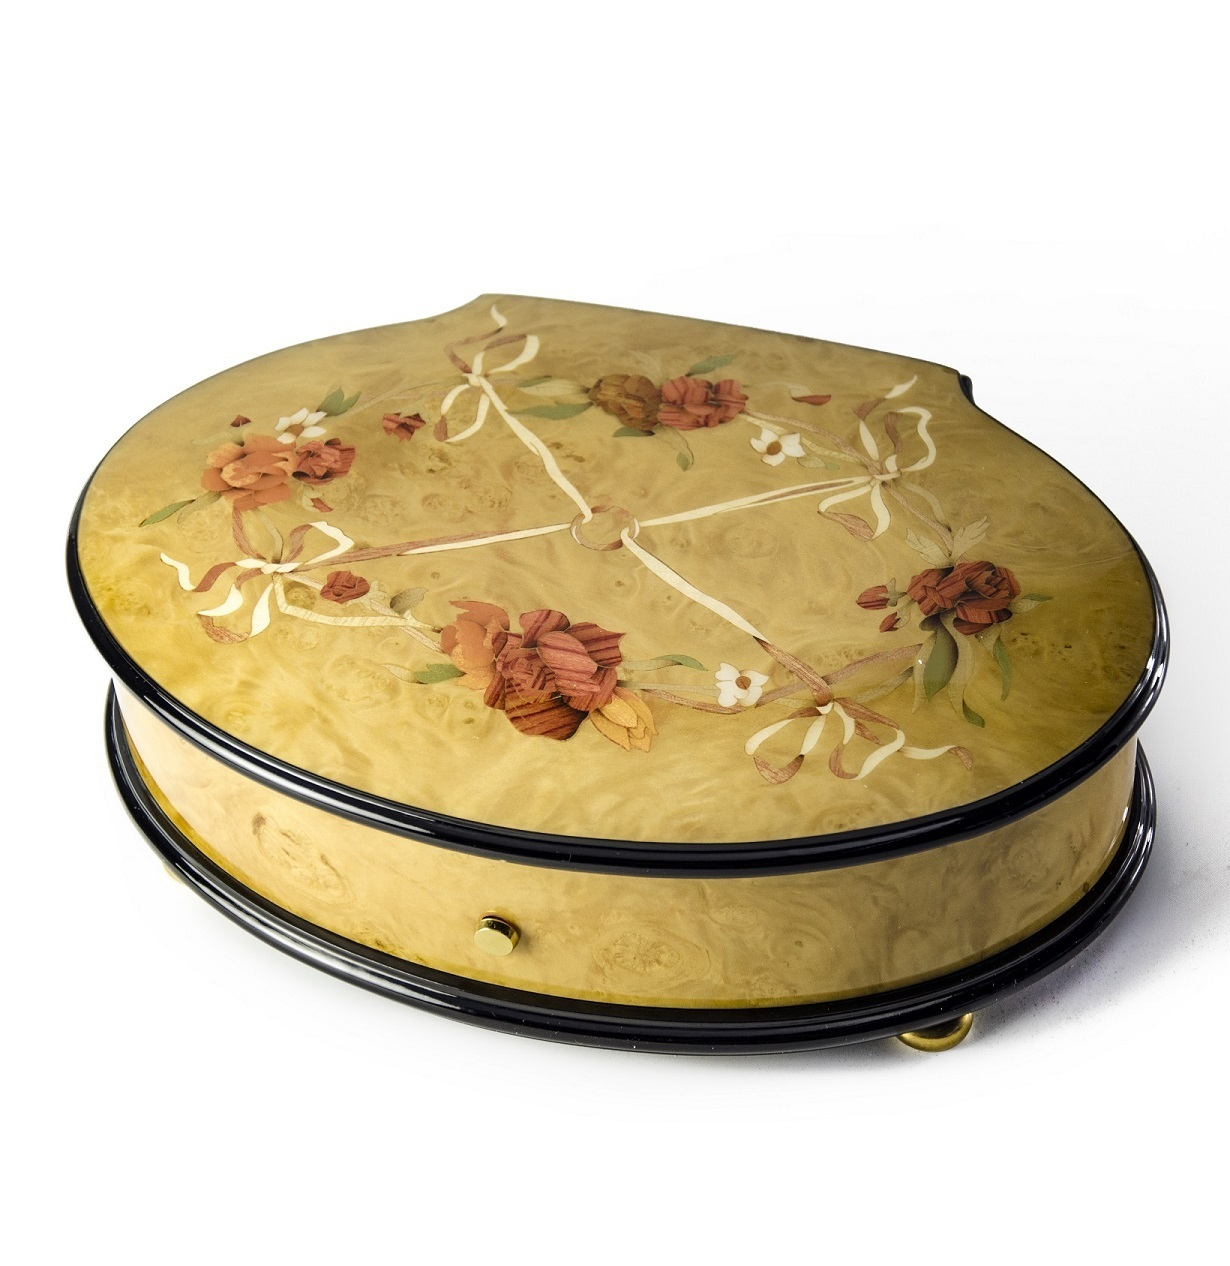 Reuge Handcrafted Roses and Ribbons 3.72 Note Music Box Titled Callista - IN STOCK SPECIAL PRICE